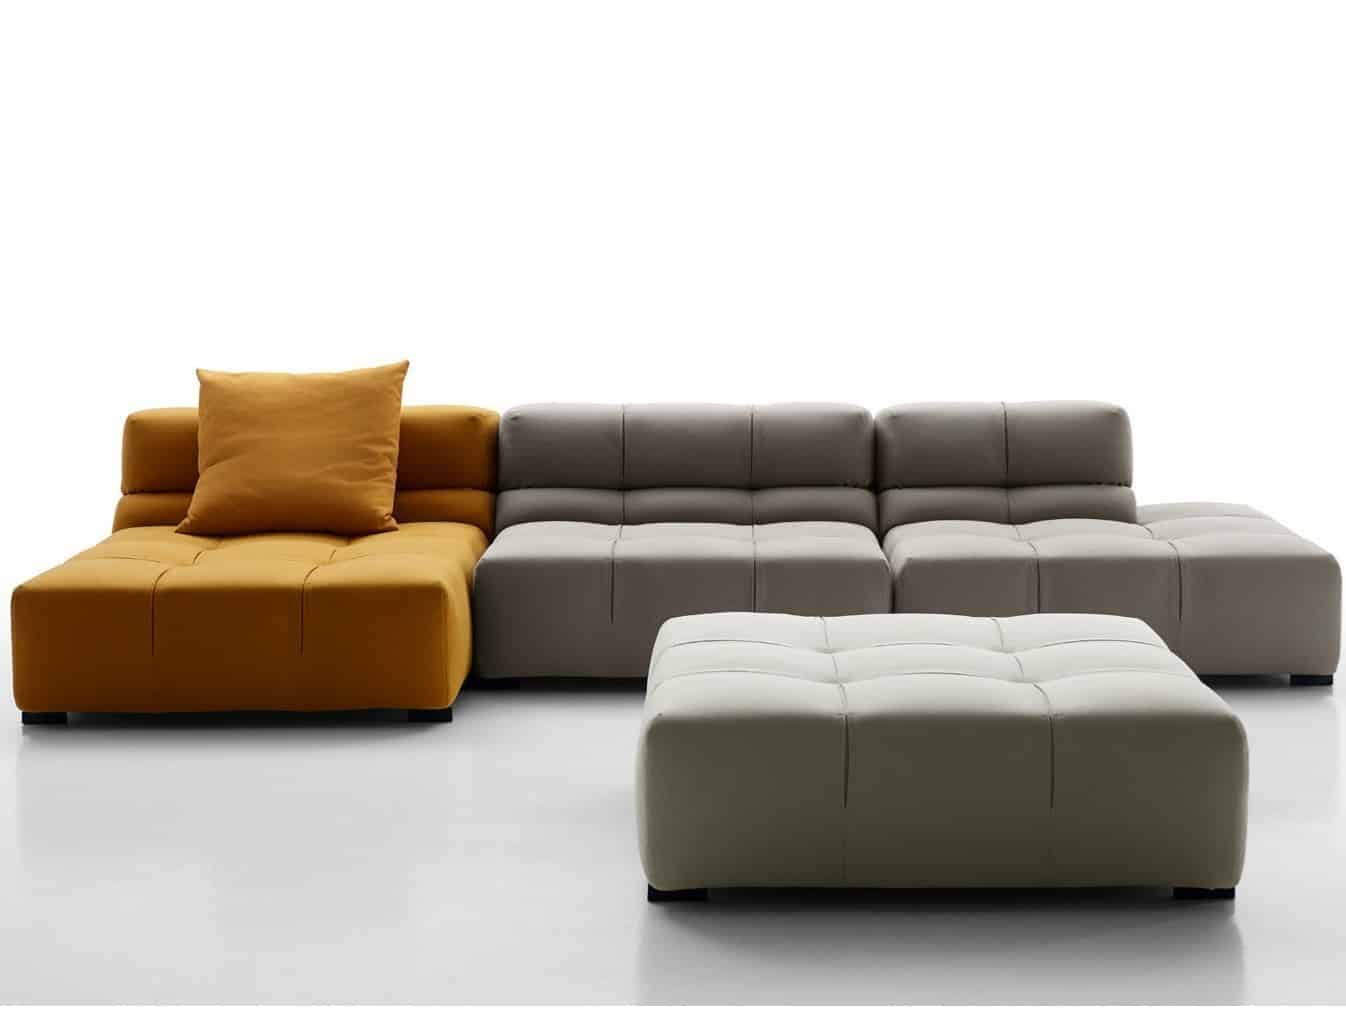 View In Gallery This Trendy Cubic Sofa Is A New Addition To Tufty Time 1  Thumb 630xauto 54852 This